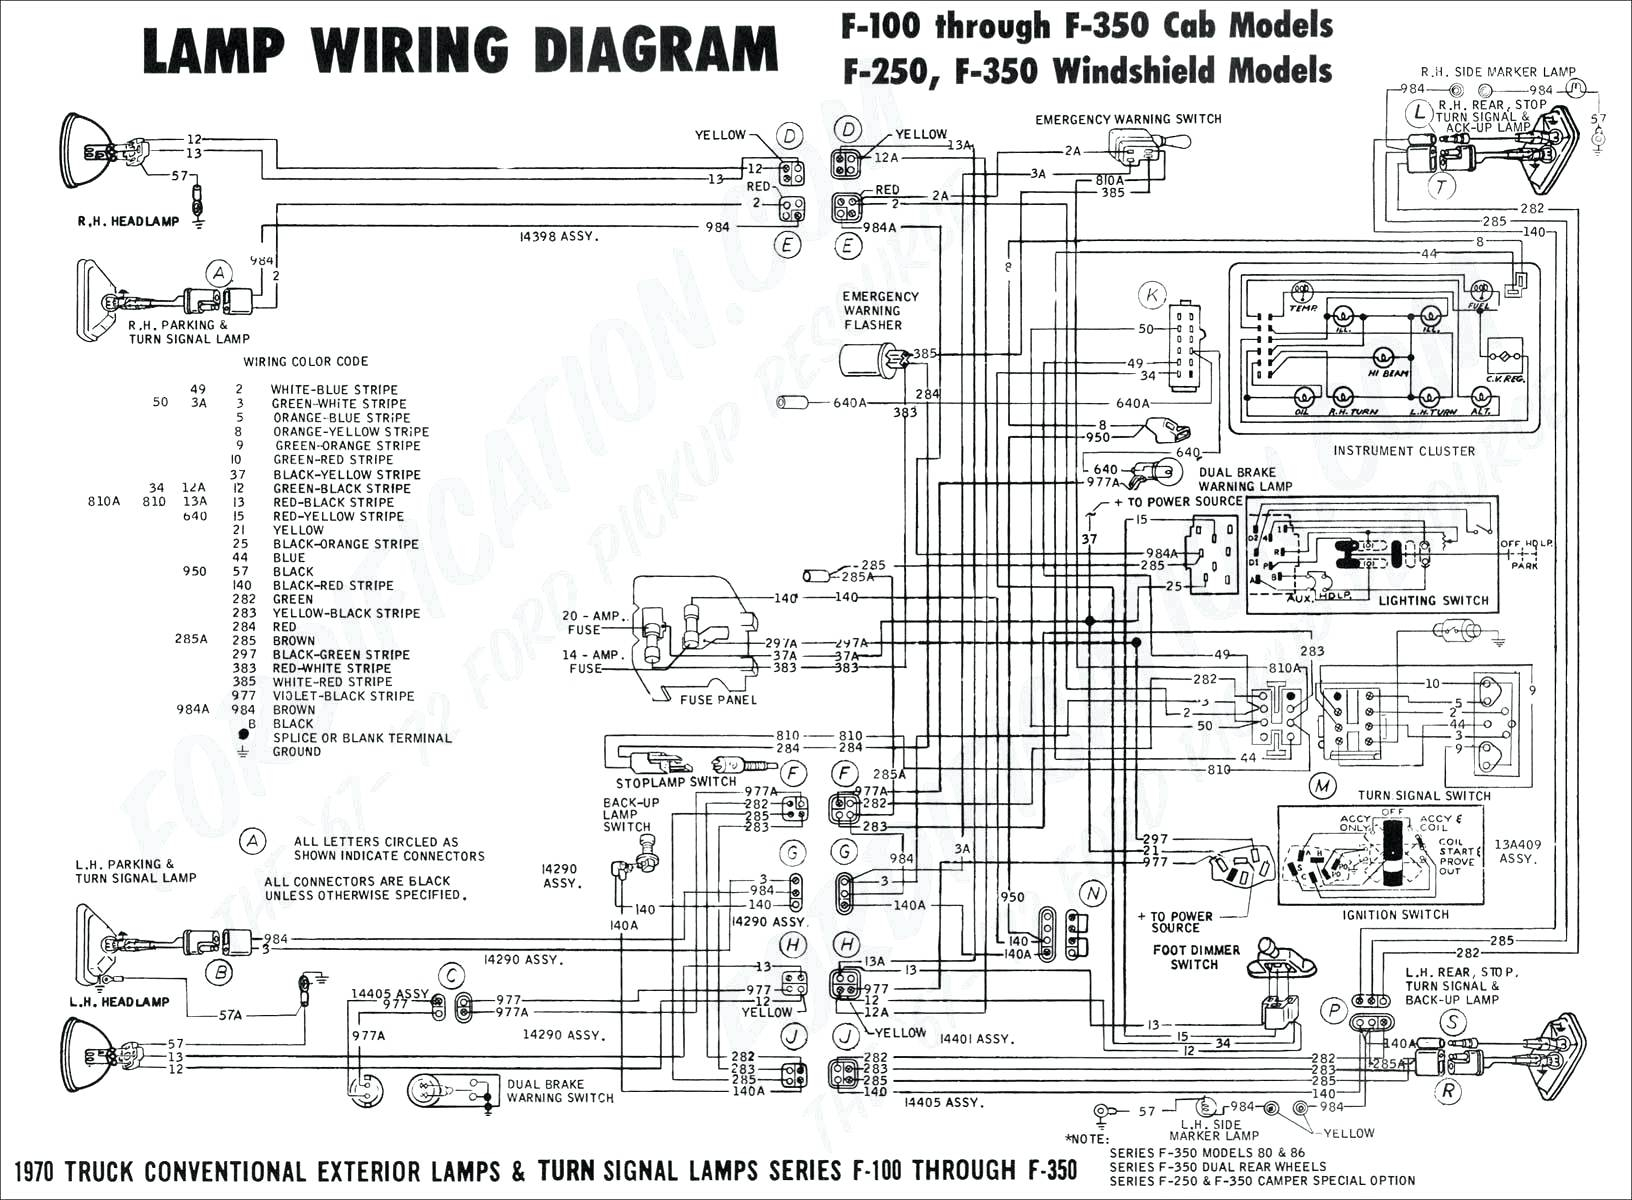 2005 Dodge Ram 3500 Trailer Wiring Diagram from wholefoodsonabudget.com